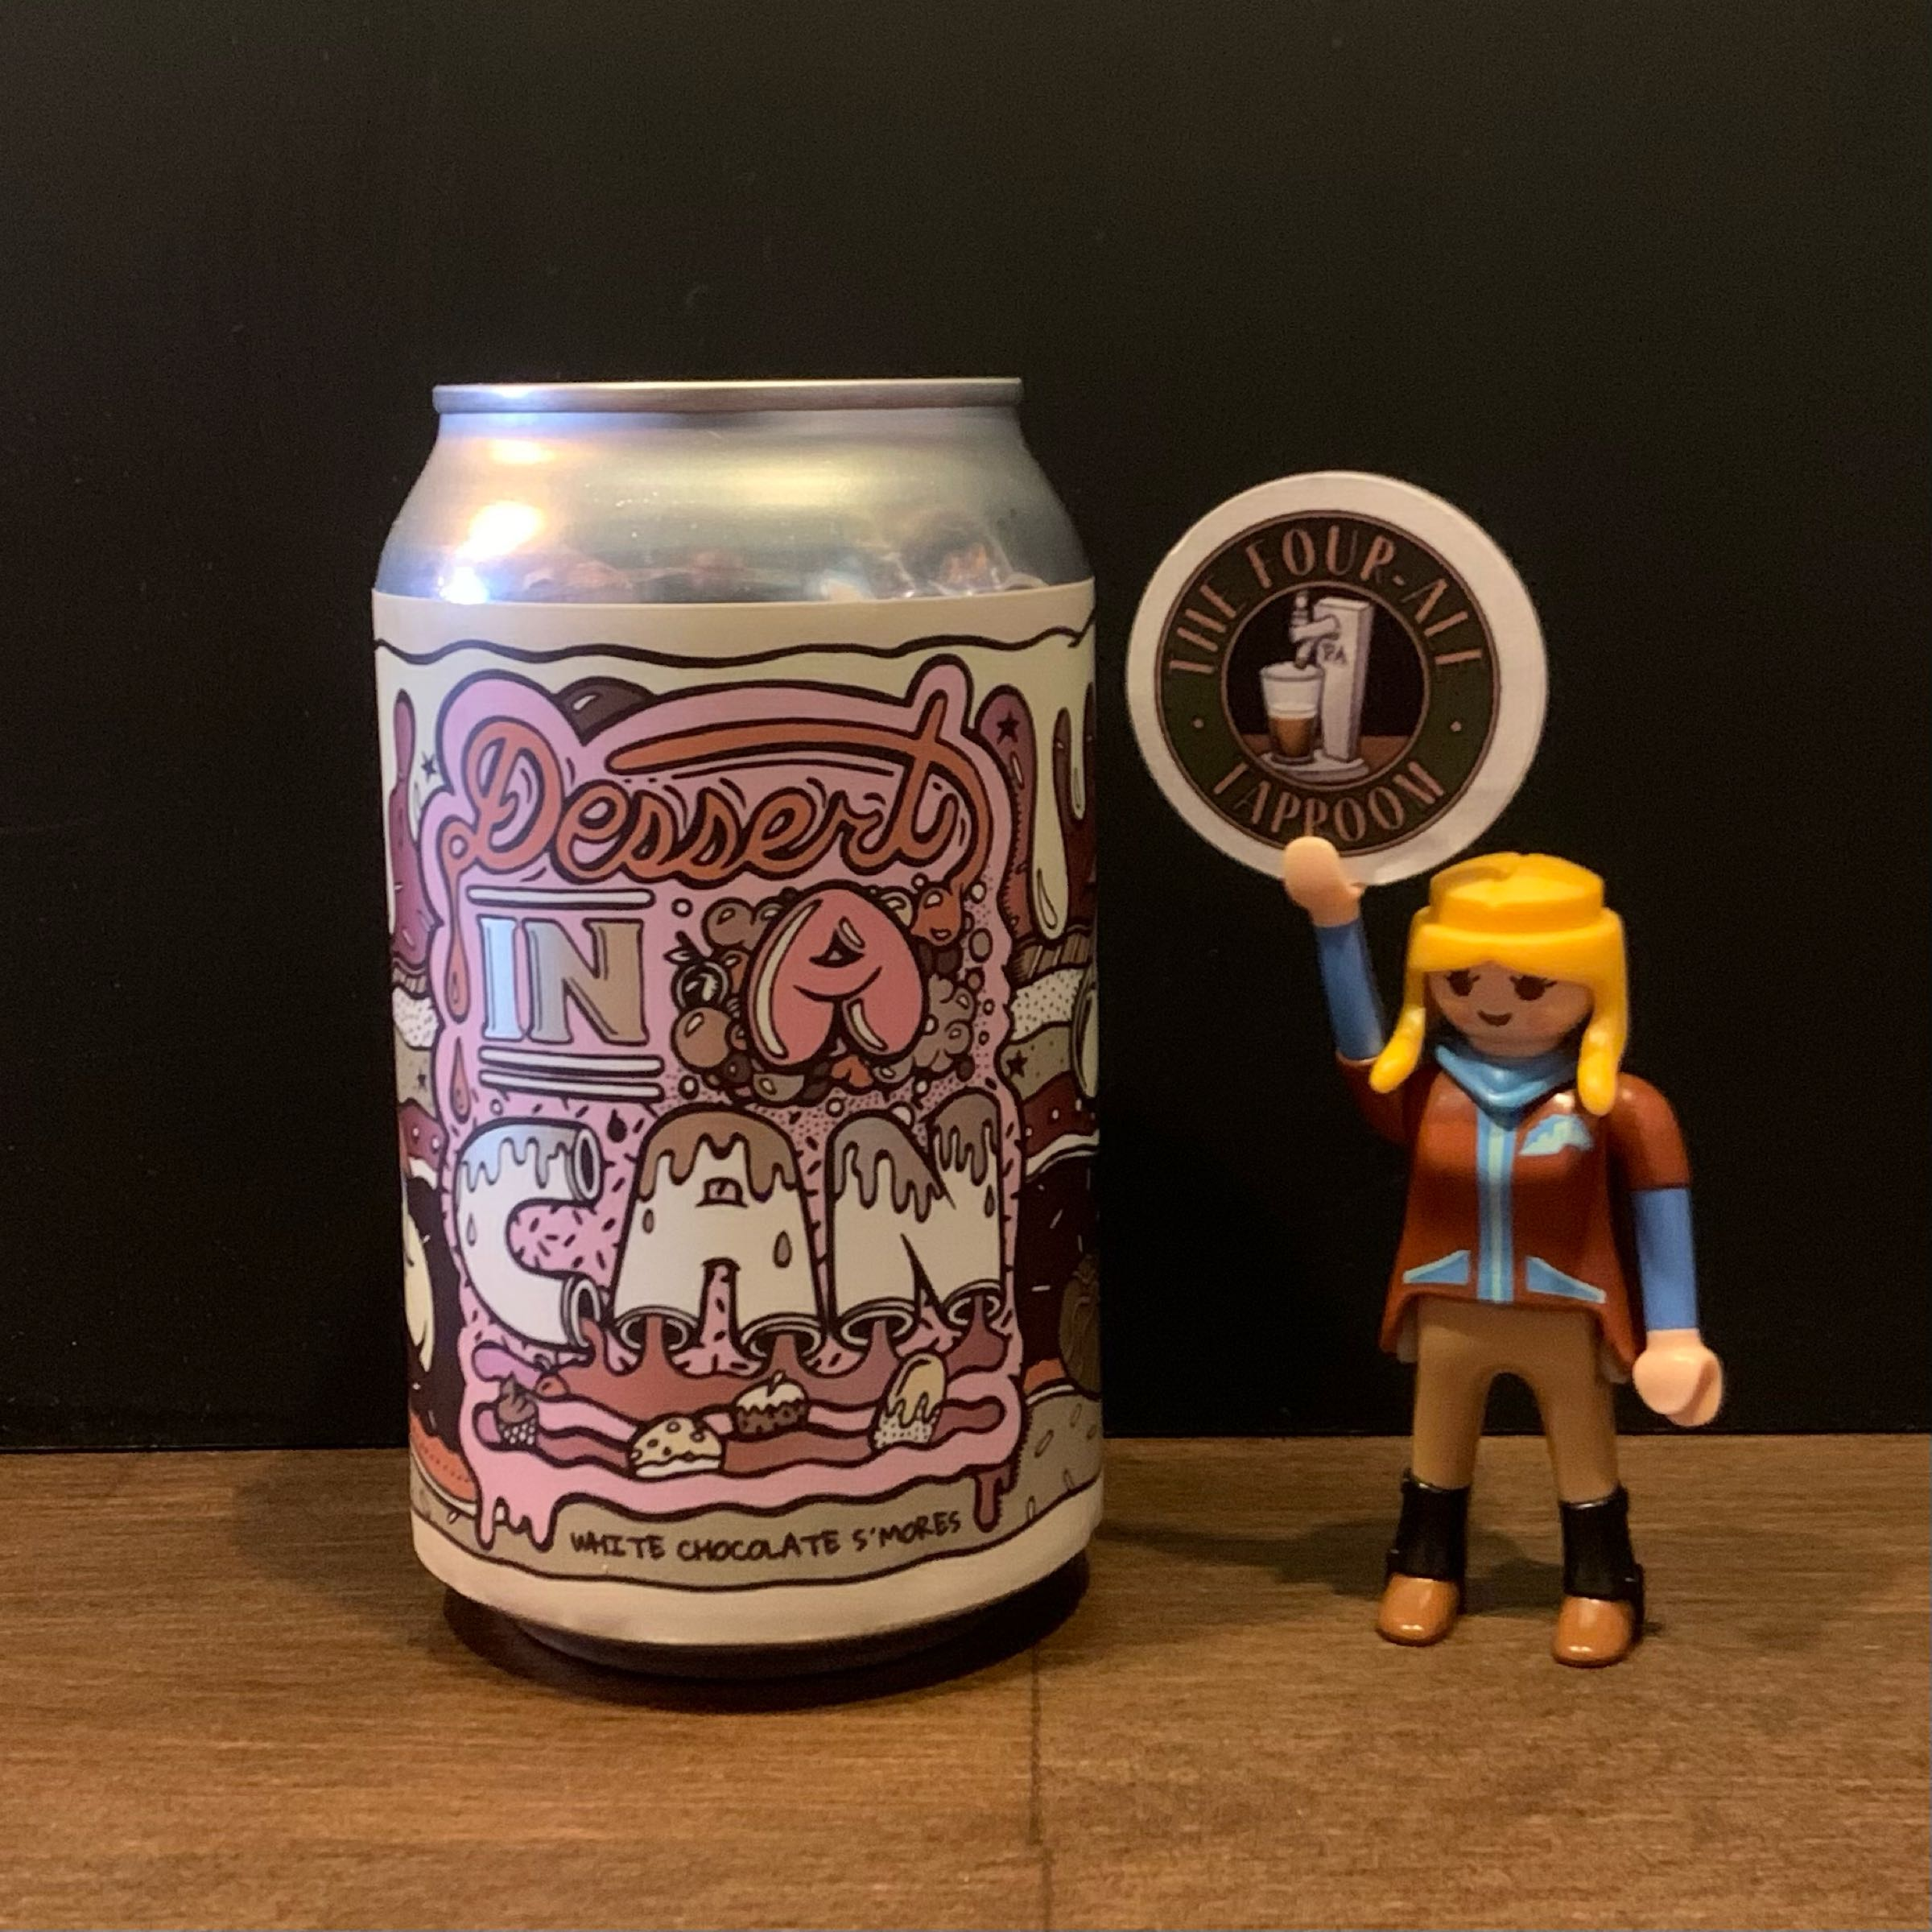 Amundsen - Dessert In A Can - White Chocolate S'mores - Imperial White Stout - 10.5%